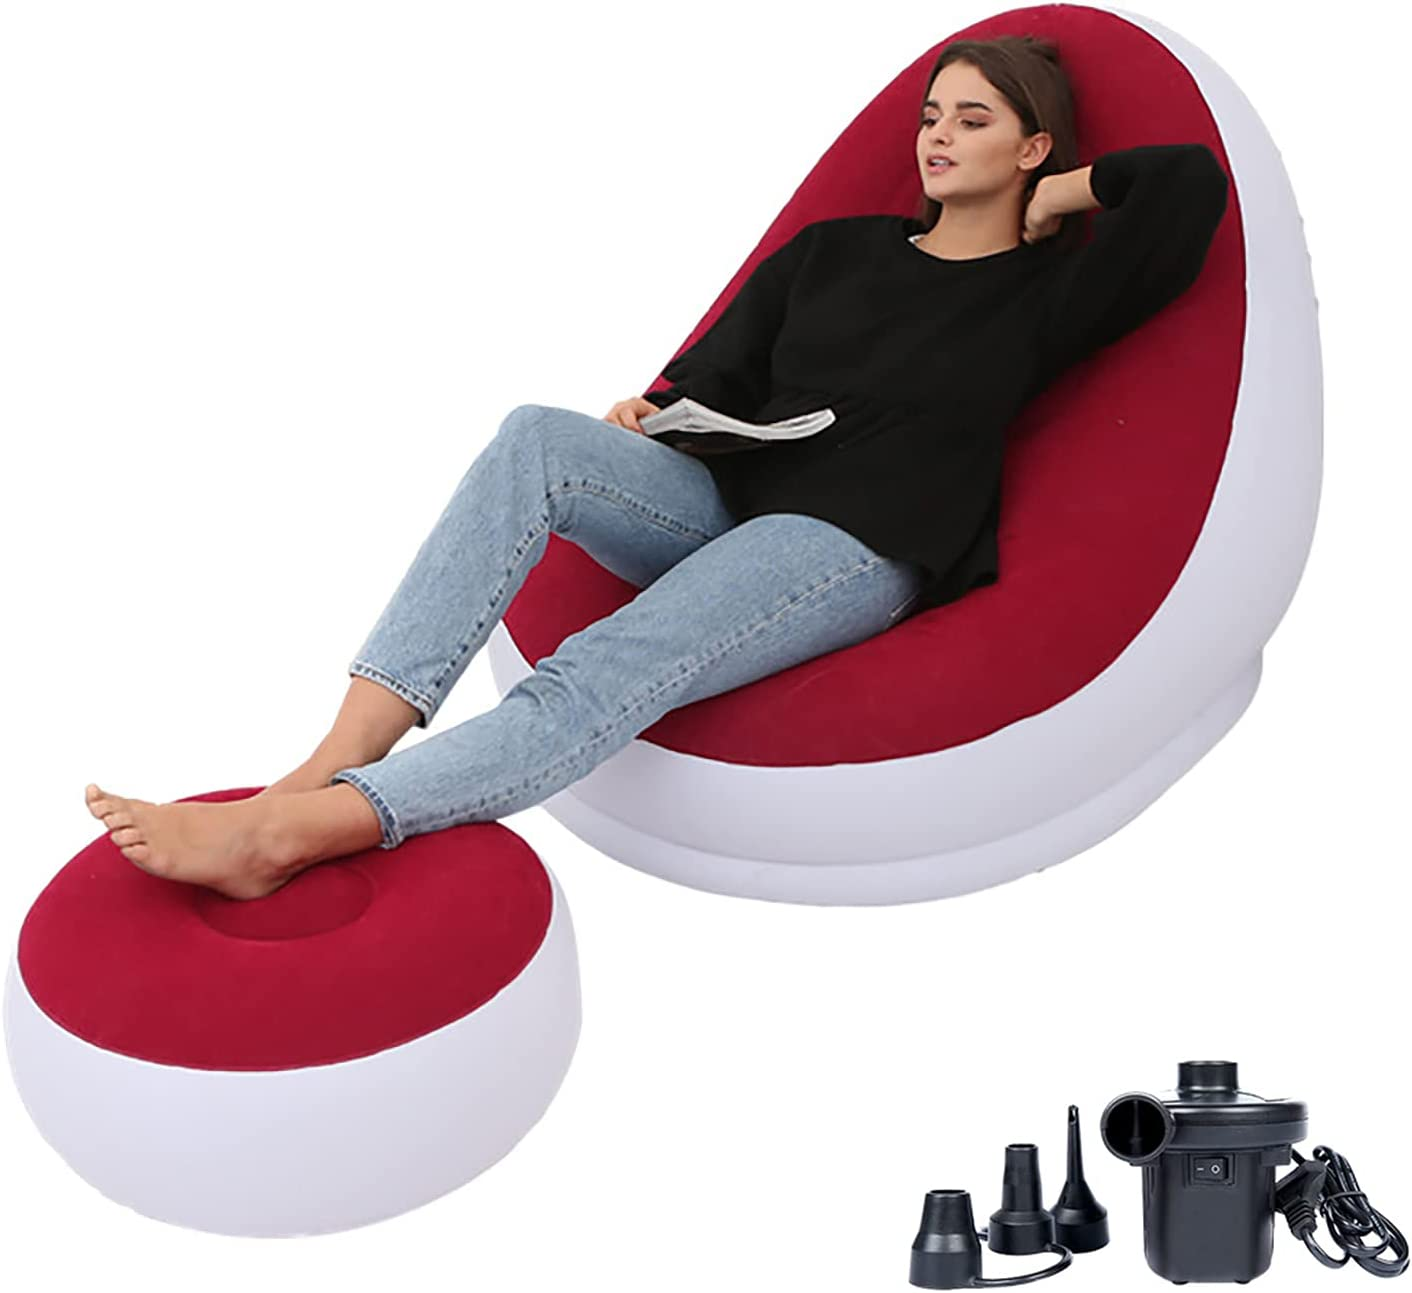 PLKO Inflatable Chair with Household air Pump,air Sofa Inflatable Couch,Inflatable Lounge Chair for Indoor LivingRoom Bedroom ReadingRoom Office Balcony,Outdoor Travel Camping Picnic(Red and White)